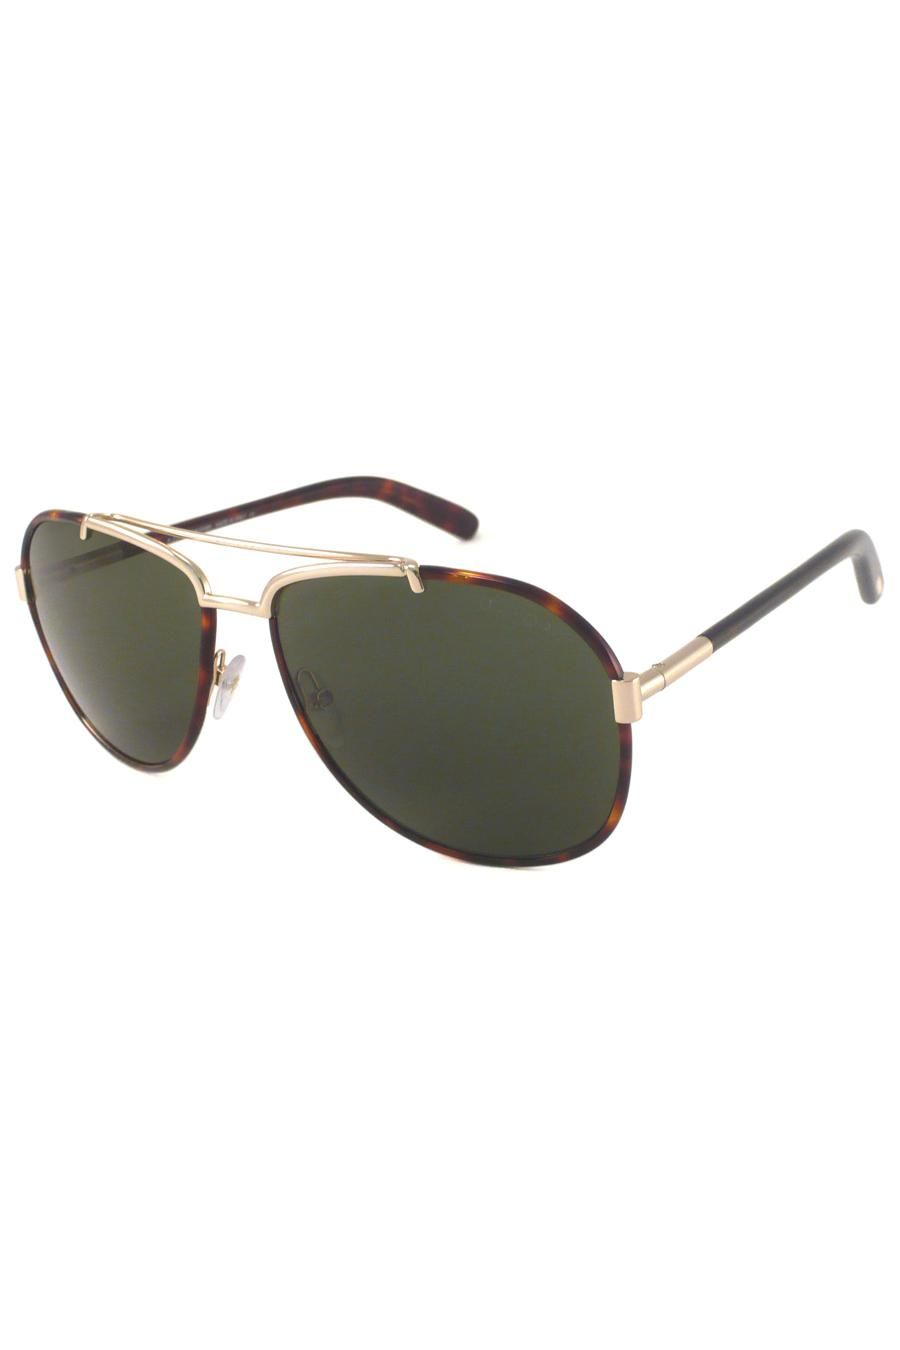 48479c99d8 Tom Ford Miguel Sunglasses